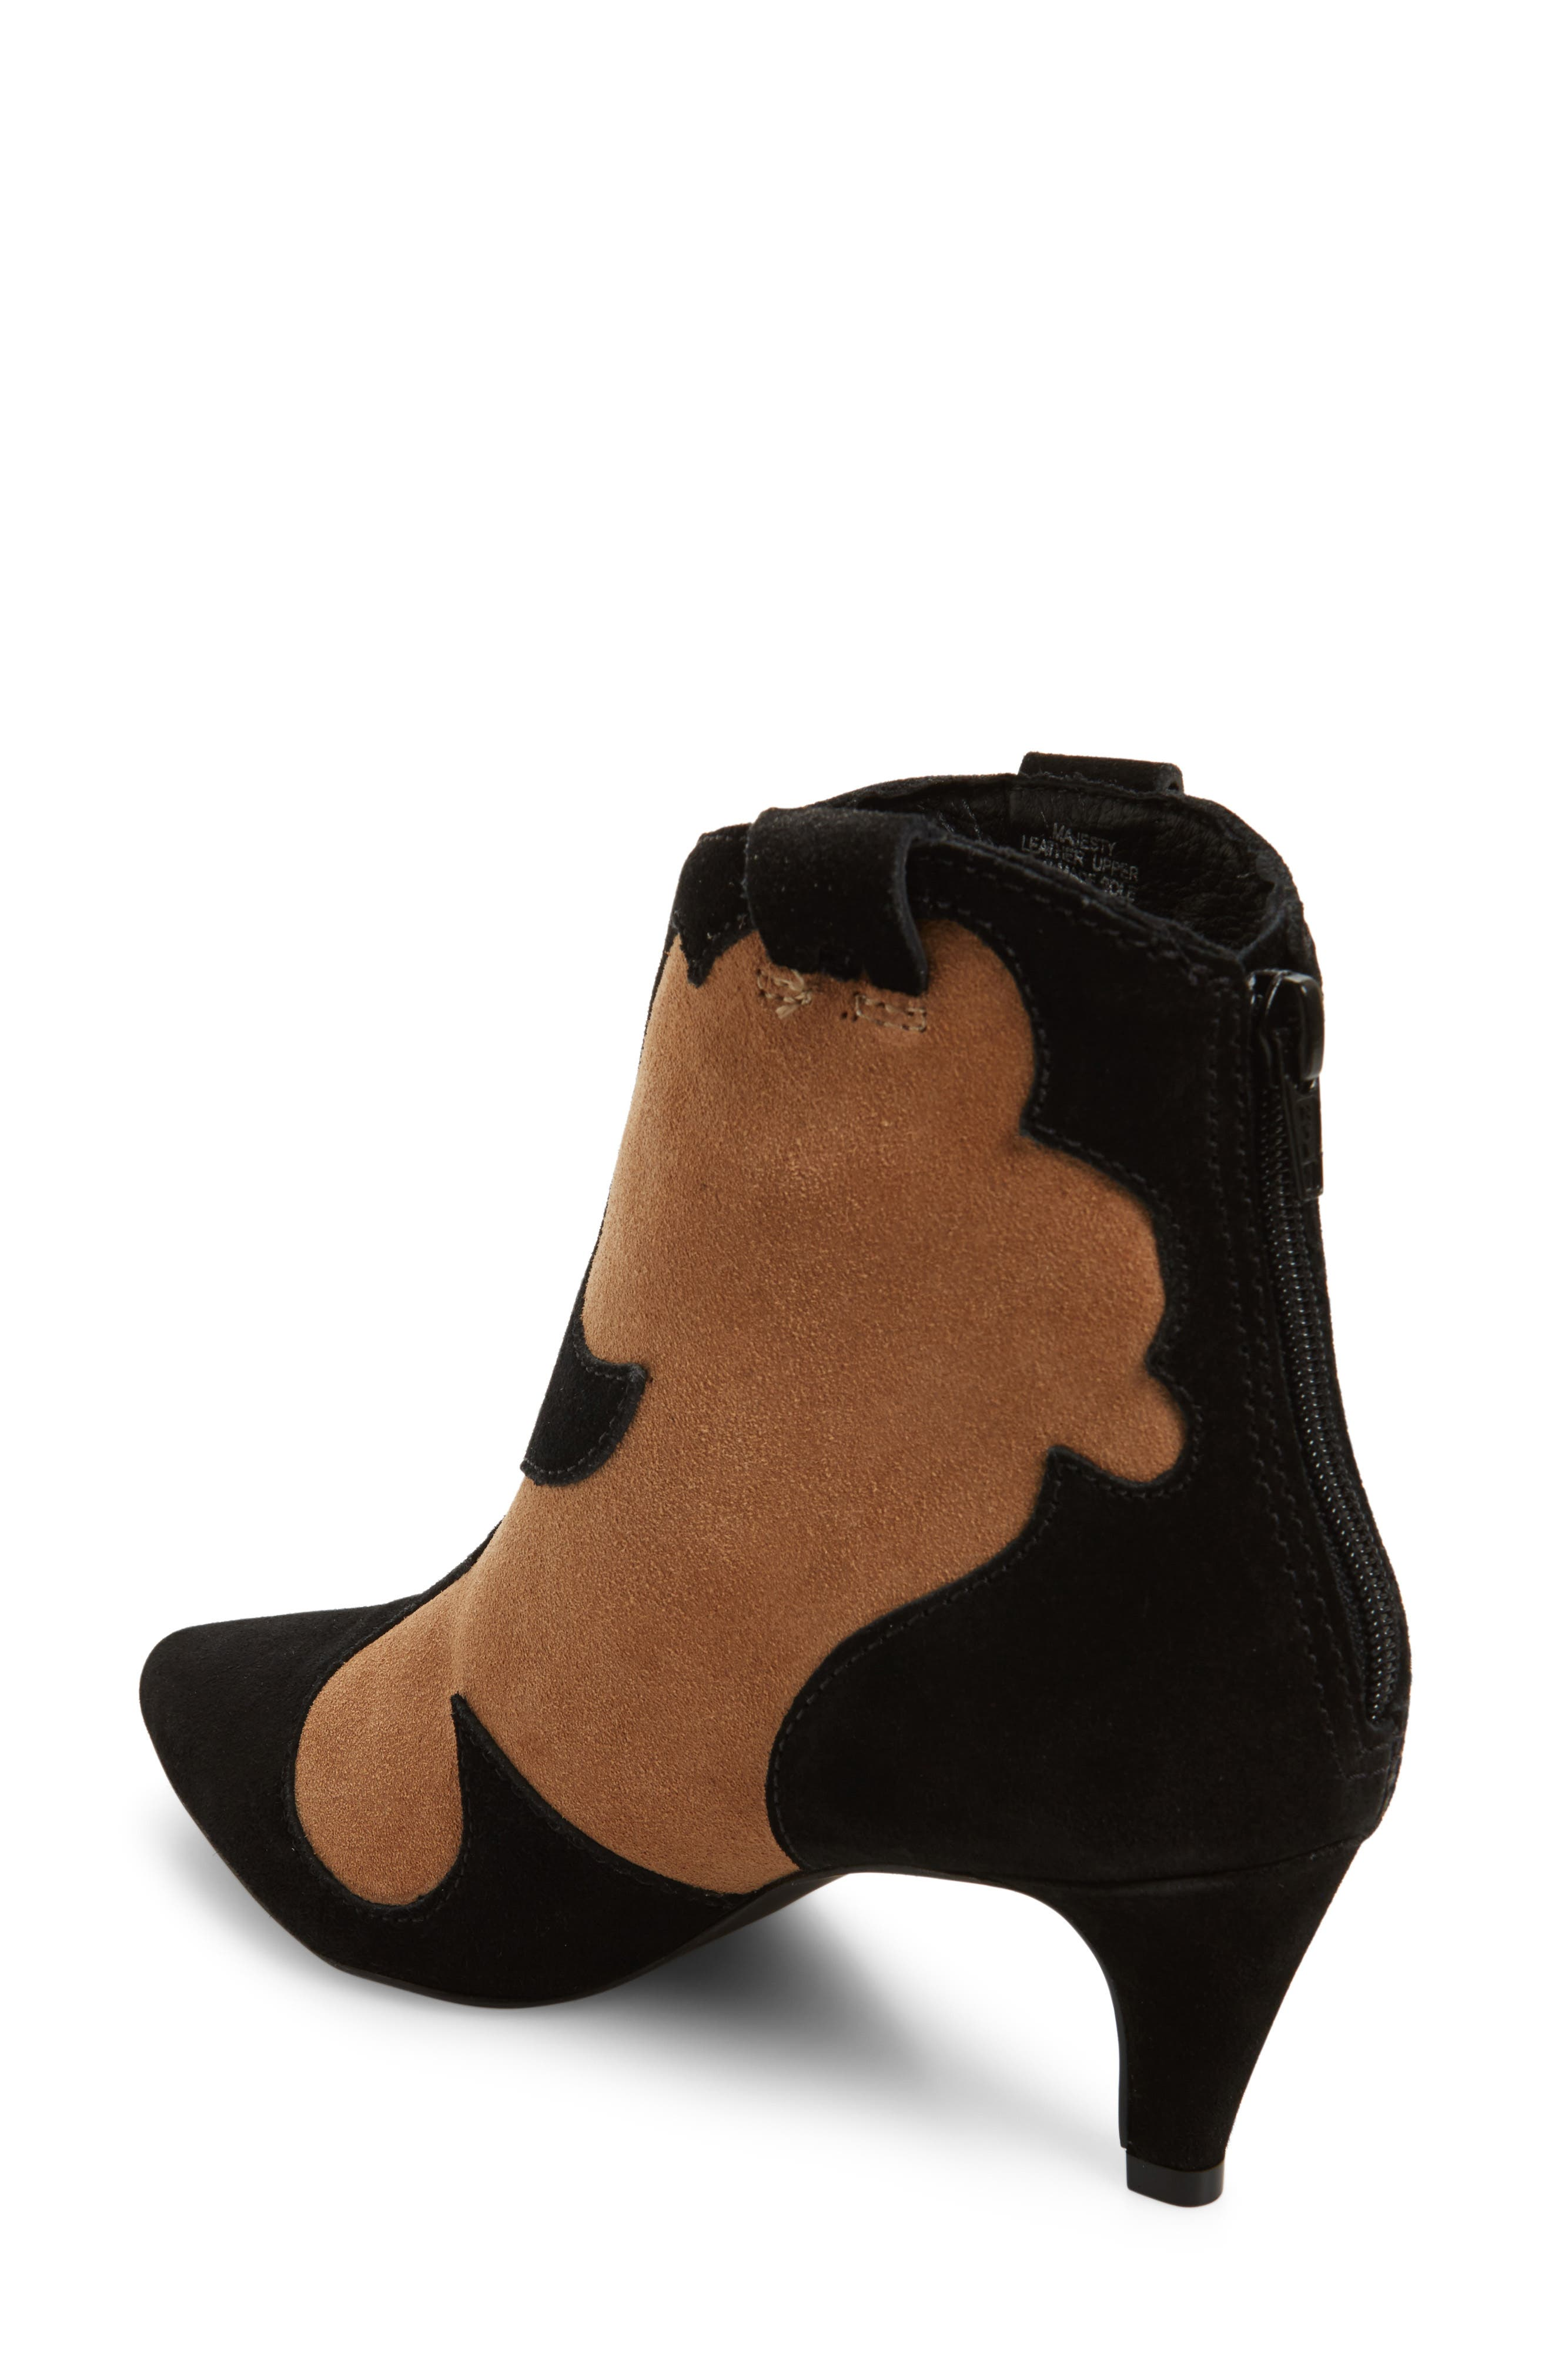 Majesty Two-Tone Bootie,                             Alternate thumbnail 2, color,